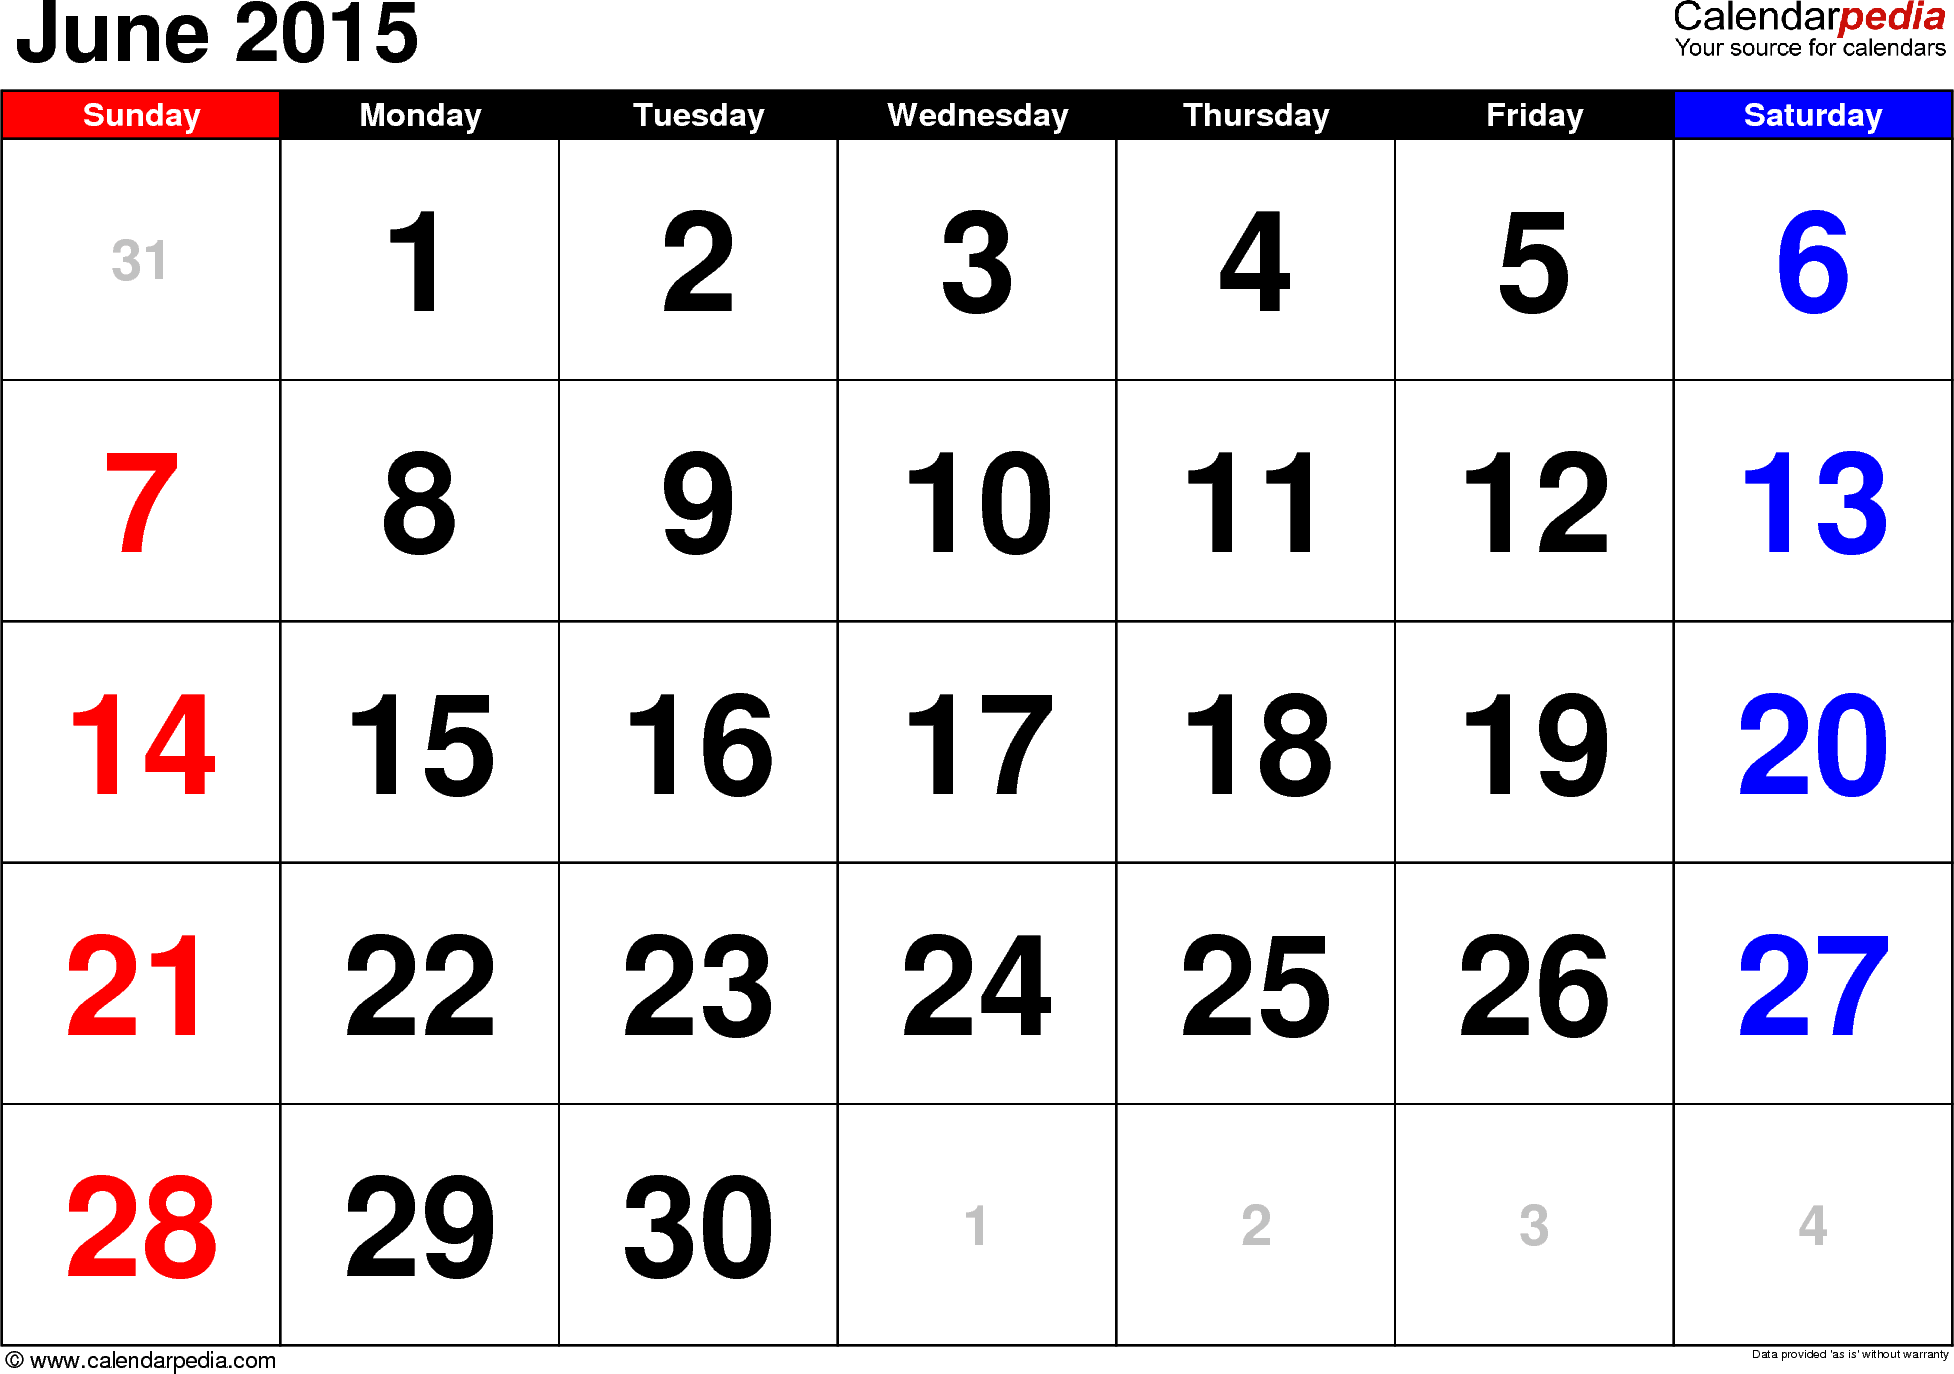 June 2015 calendar, landscape orientation, large numerals, available as printable templates for Word, Excel and PDF